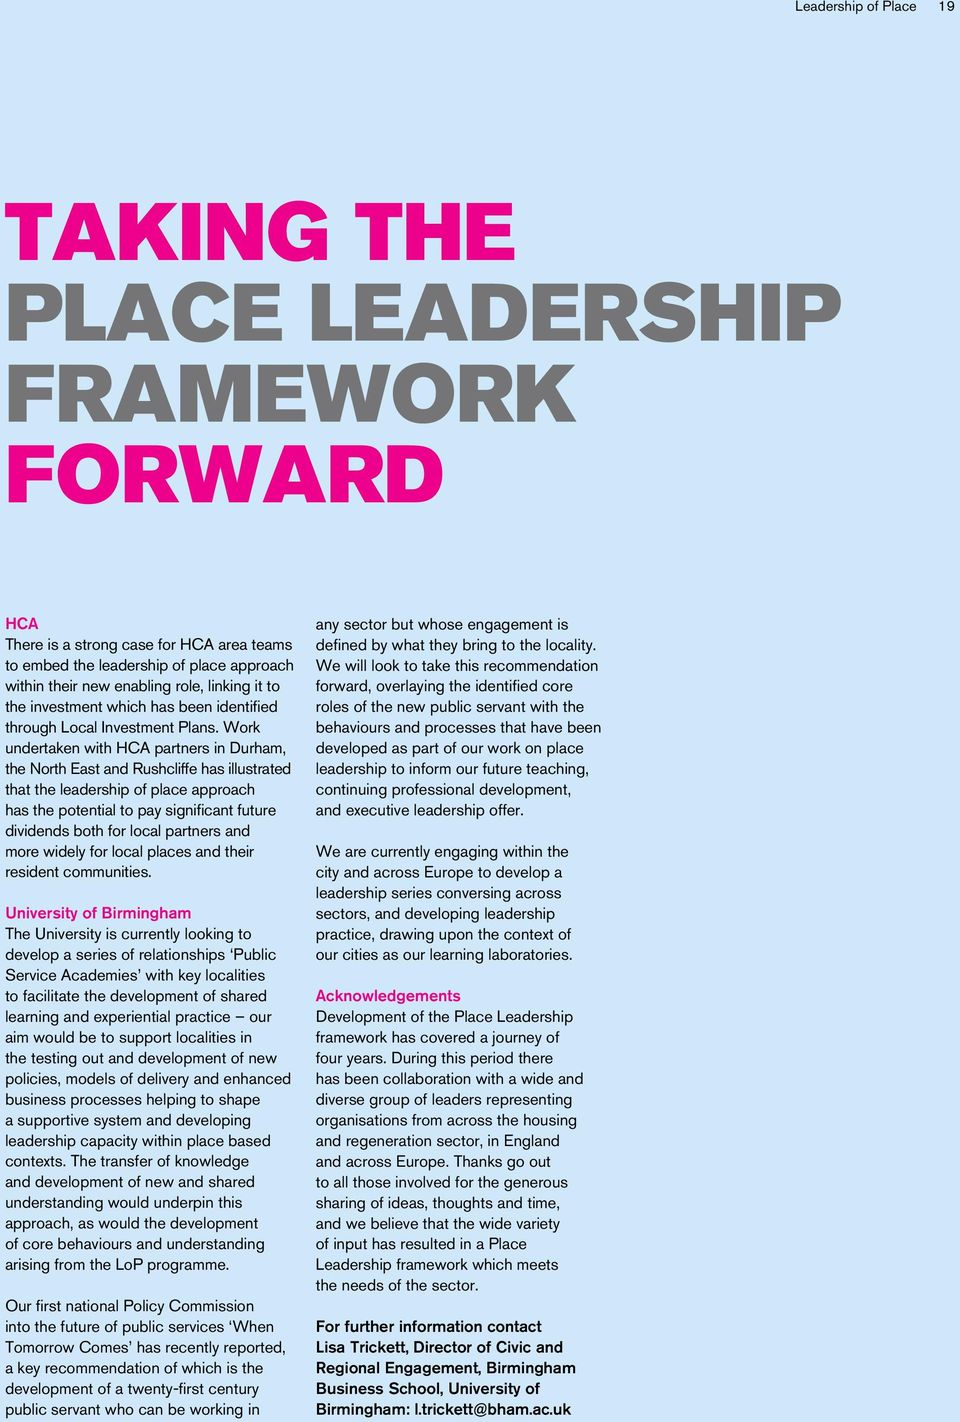 Work undertaken with HCA partners in Durham, the North East and Rushcliffe has illustrated that the leadership of place approach has the potential to pay significant future dividends both for local